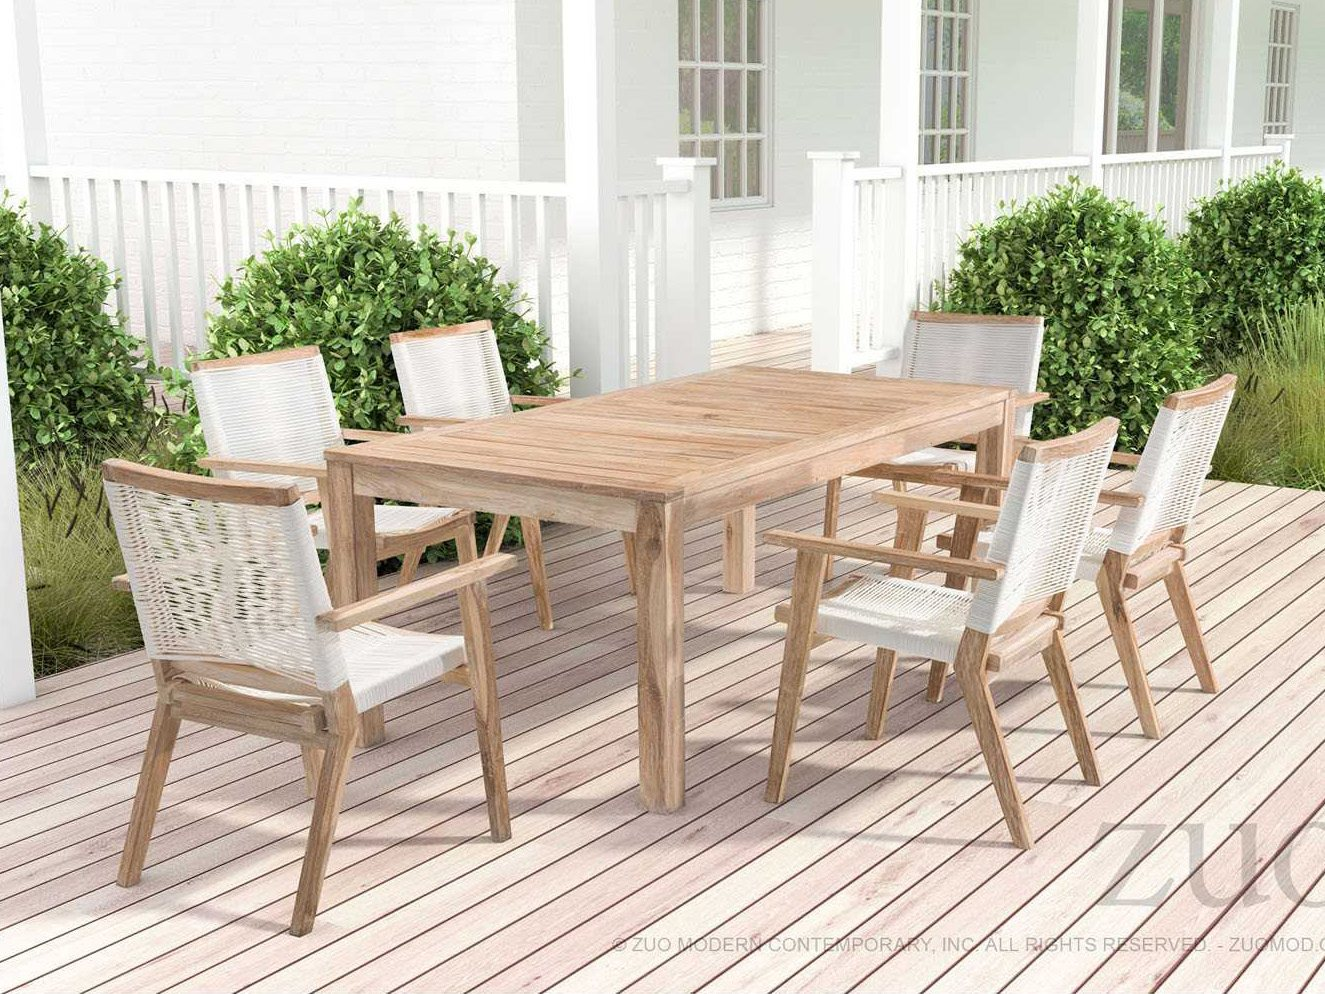 Zuo Outdoor West Port Teak Synethetic Weave Dining Chair